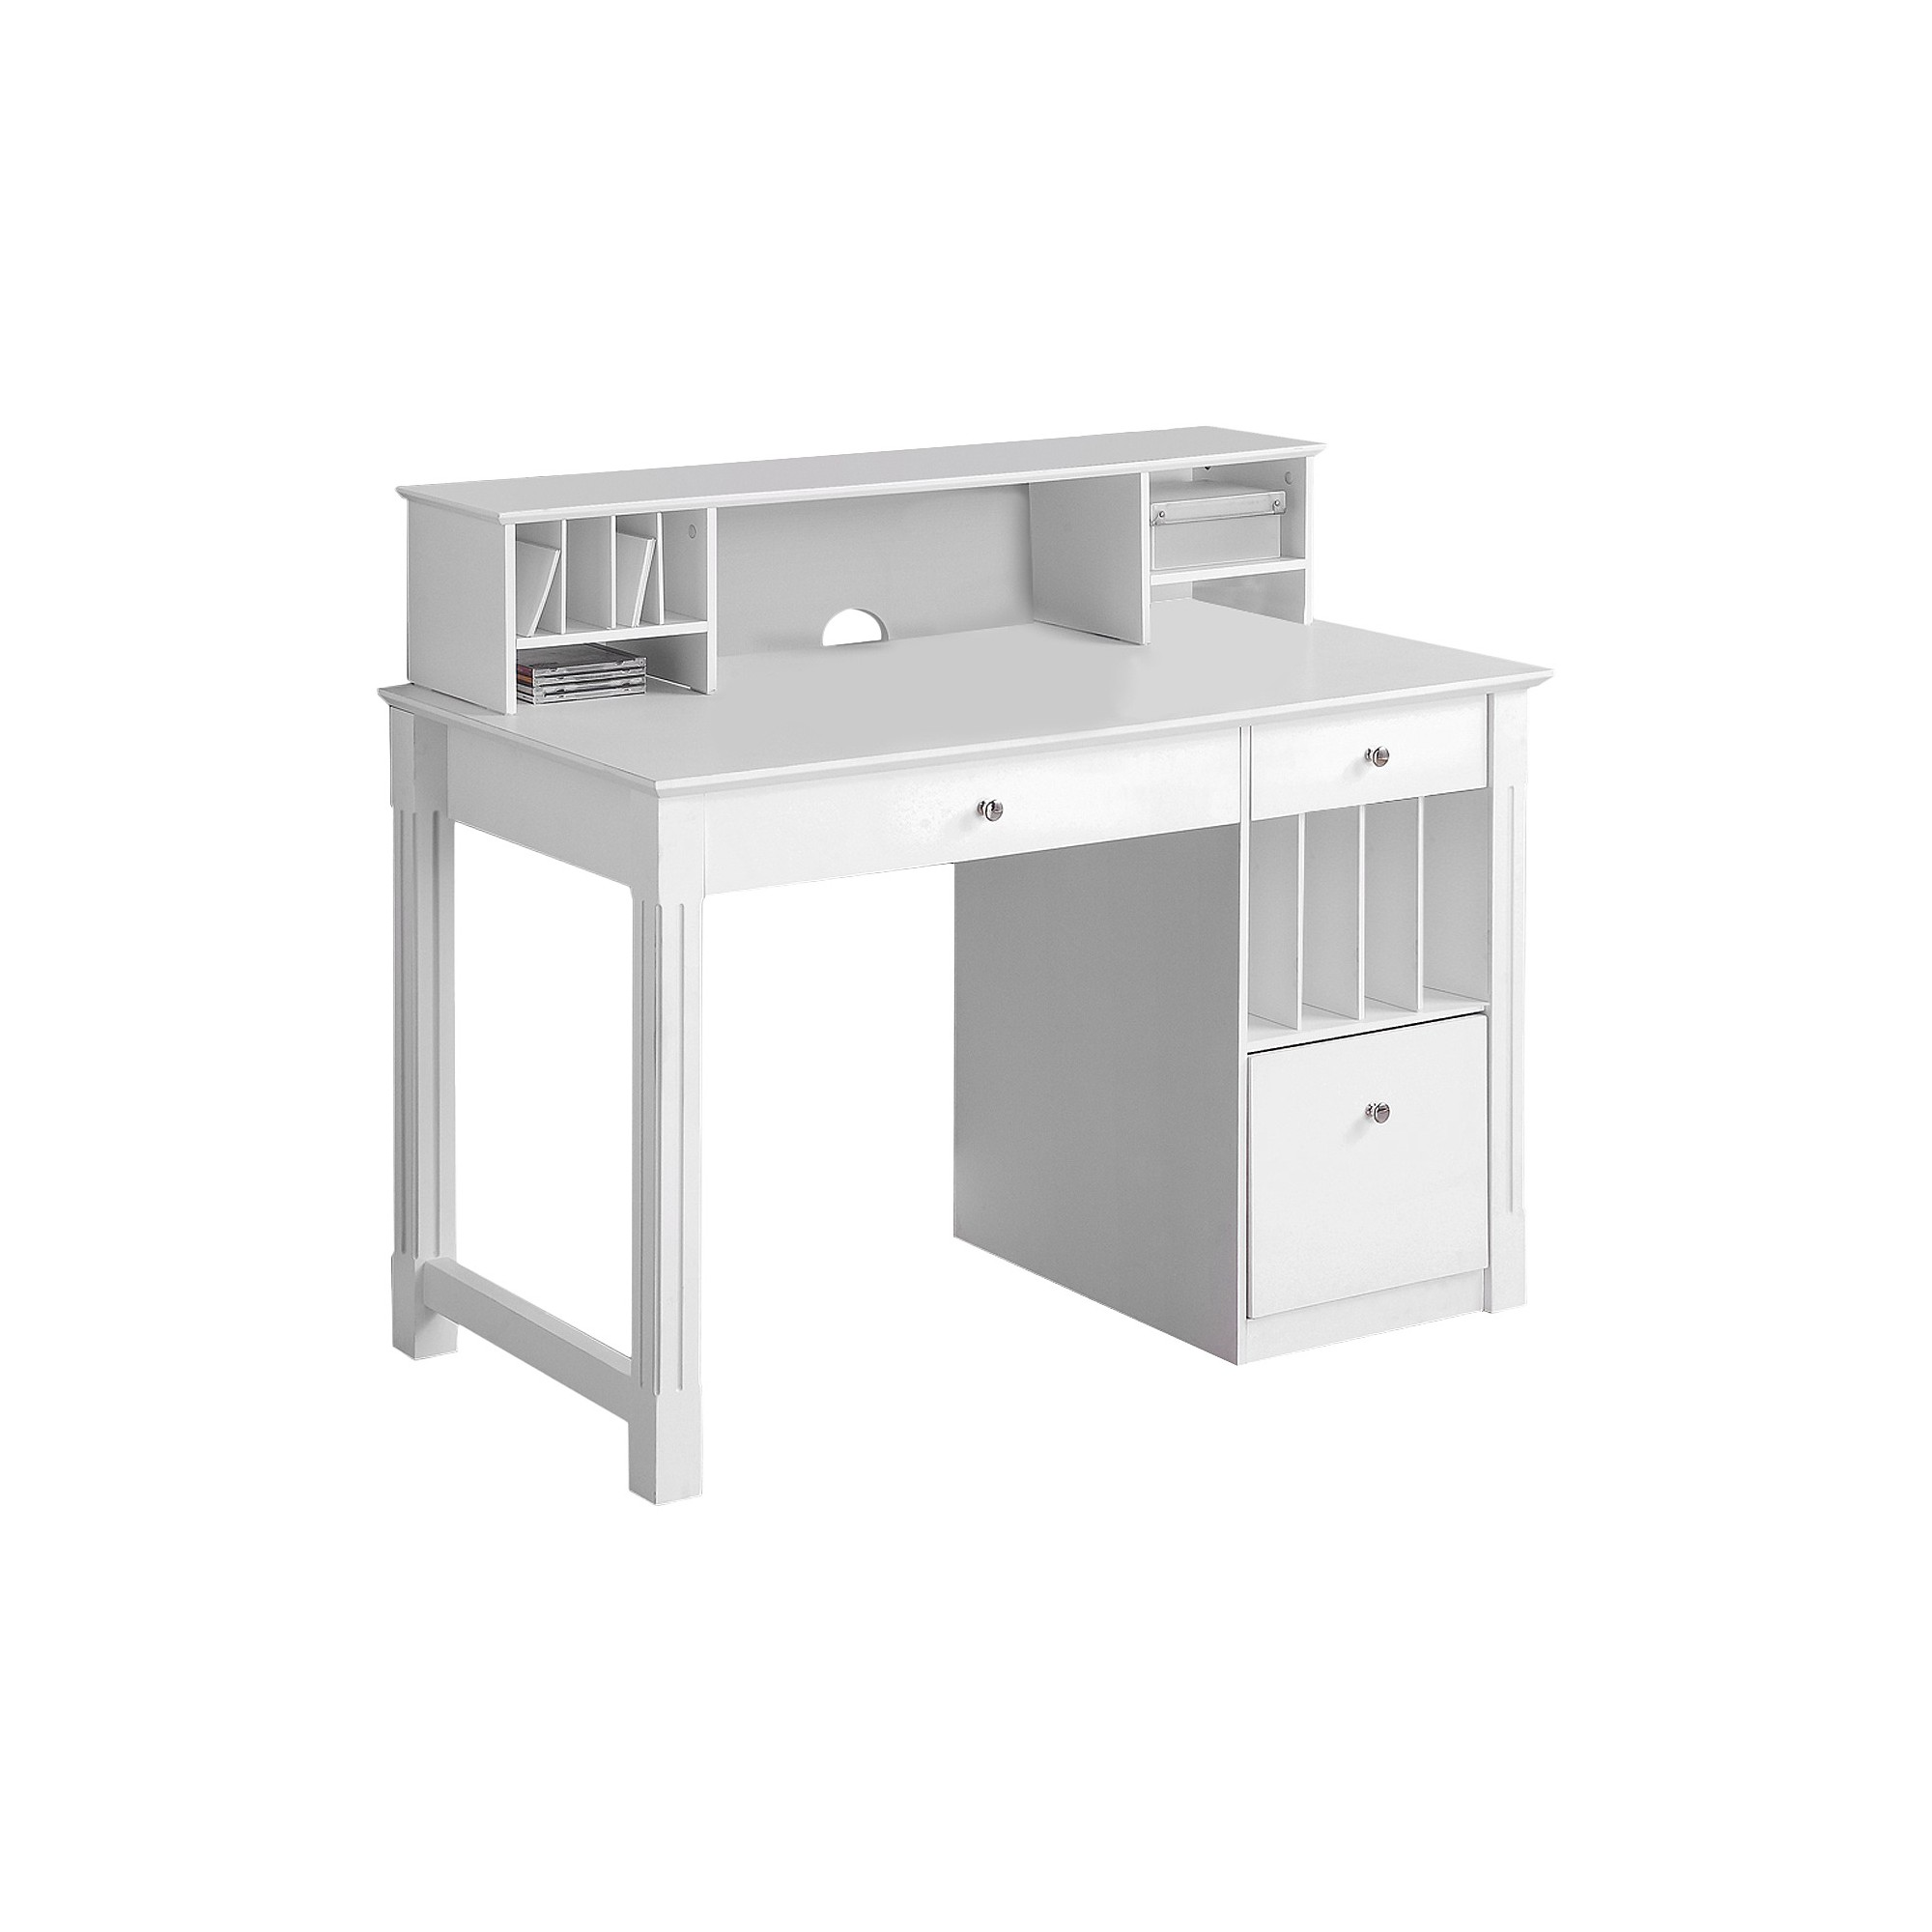 Astonishing Home Office Deluxe White Wood Storage Computer Desk With Download Free Architecture Designs Scobabritishbridgeorg